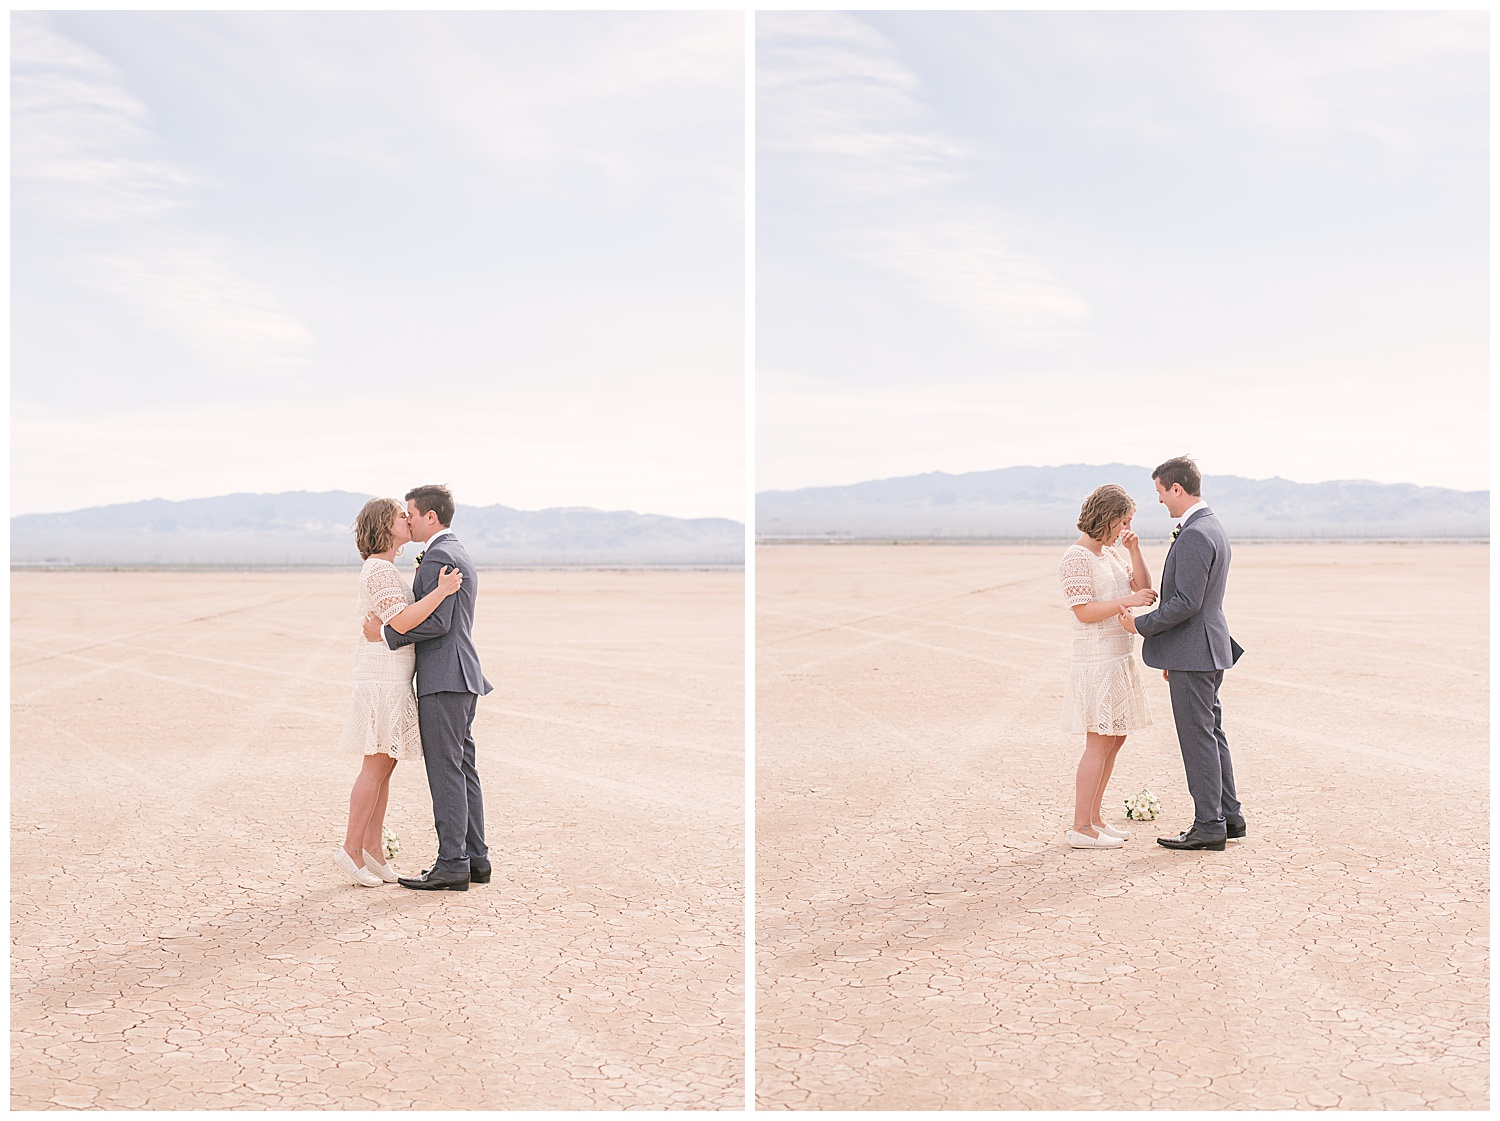 dry-lake-bed-las-vegas-elopement-photographer-05.jpg